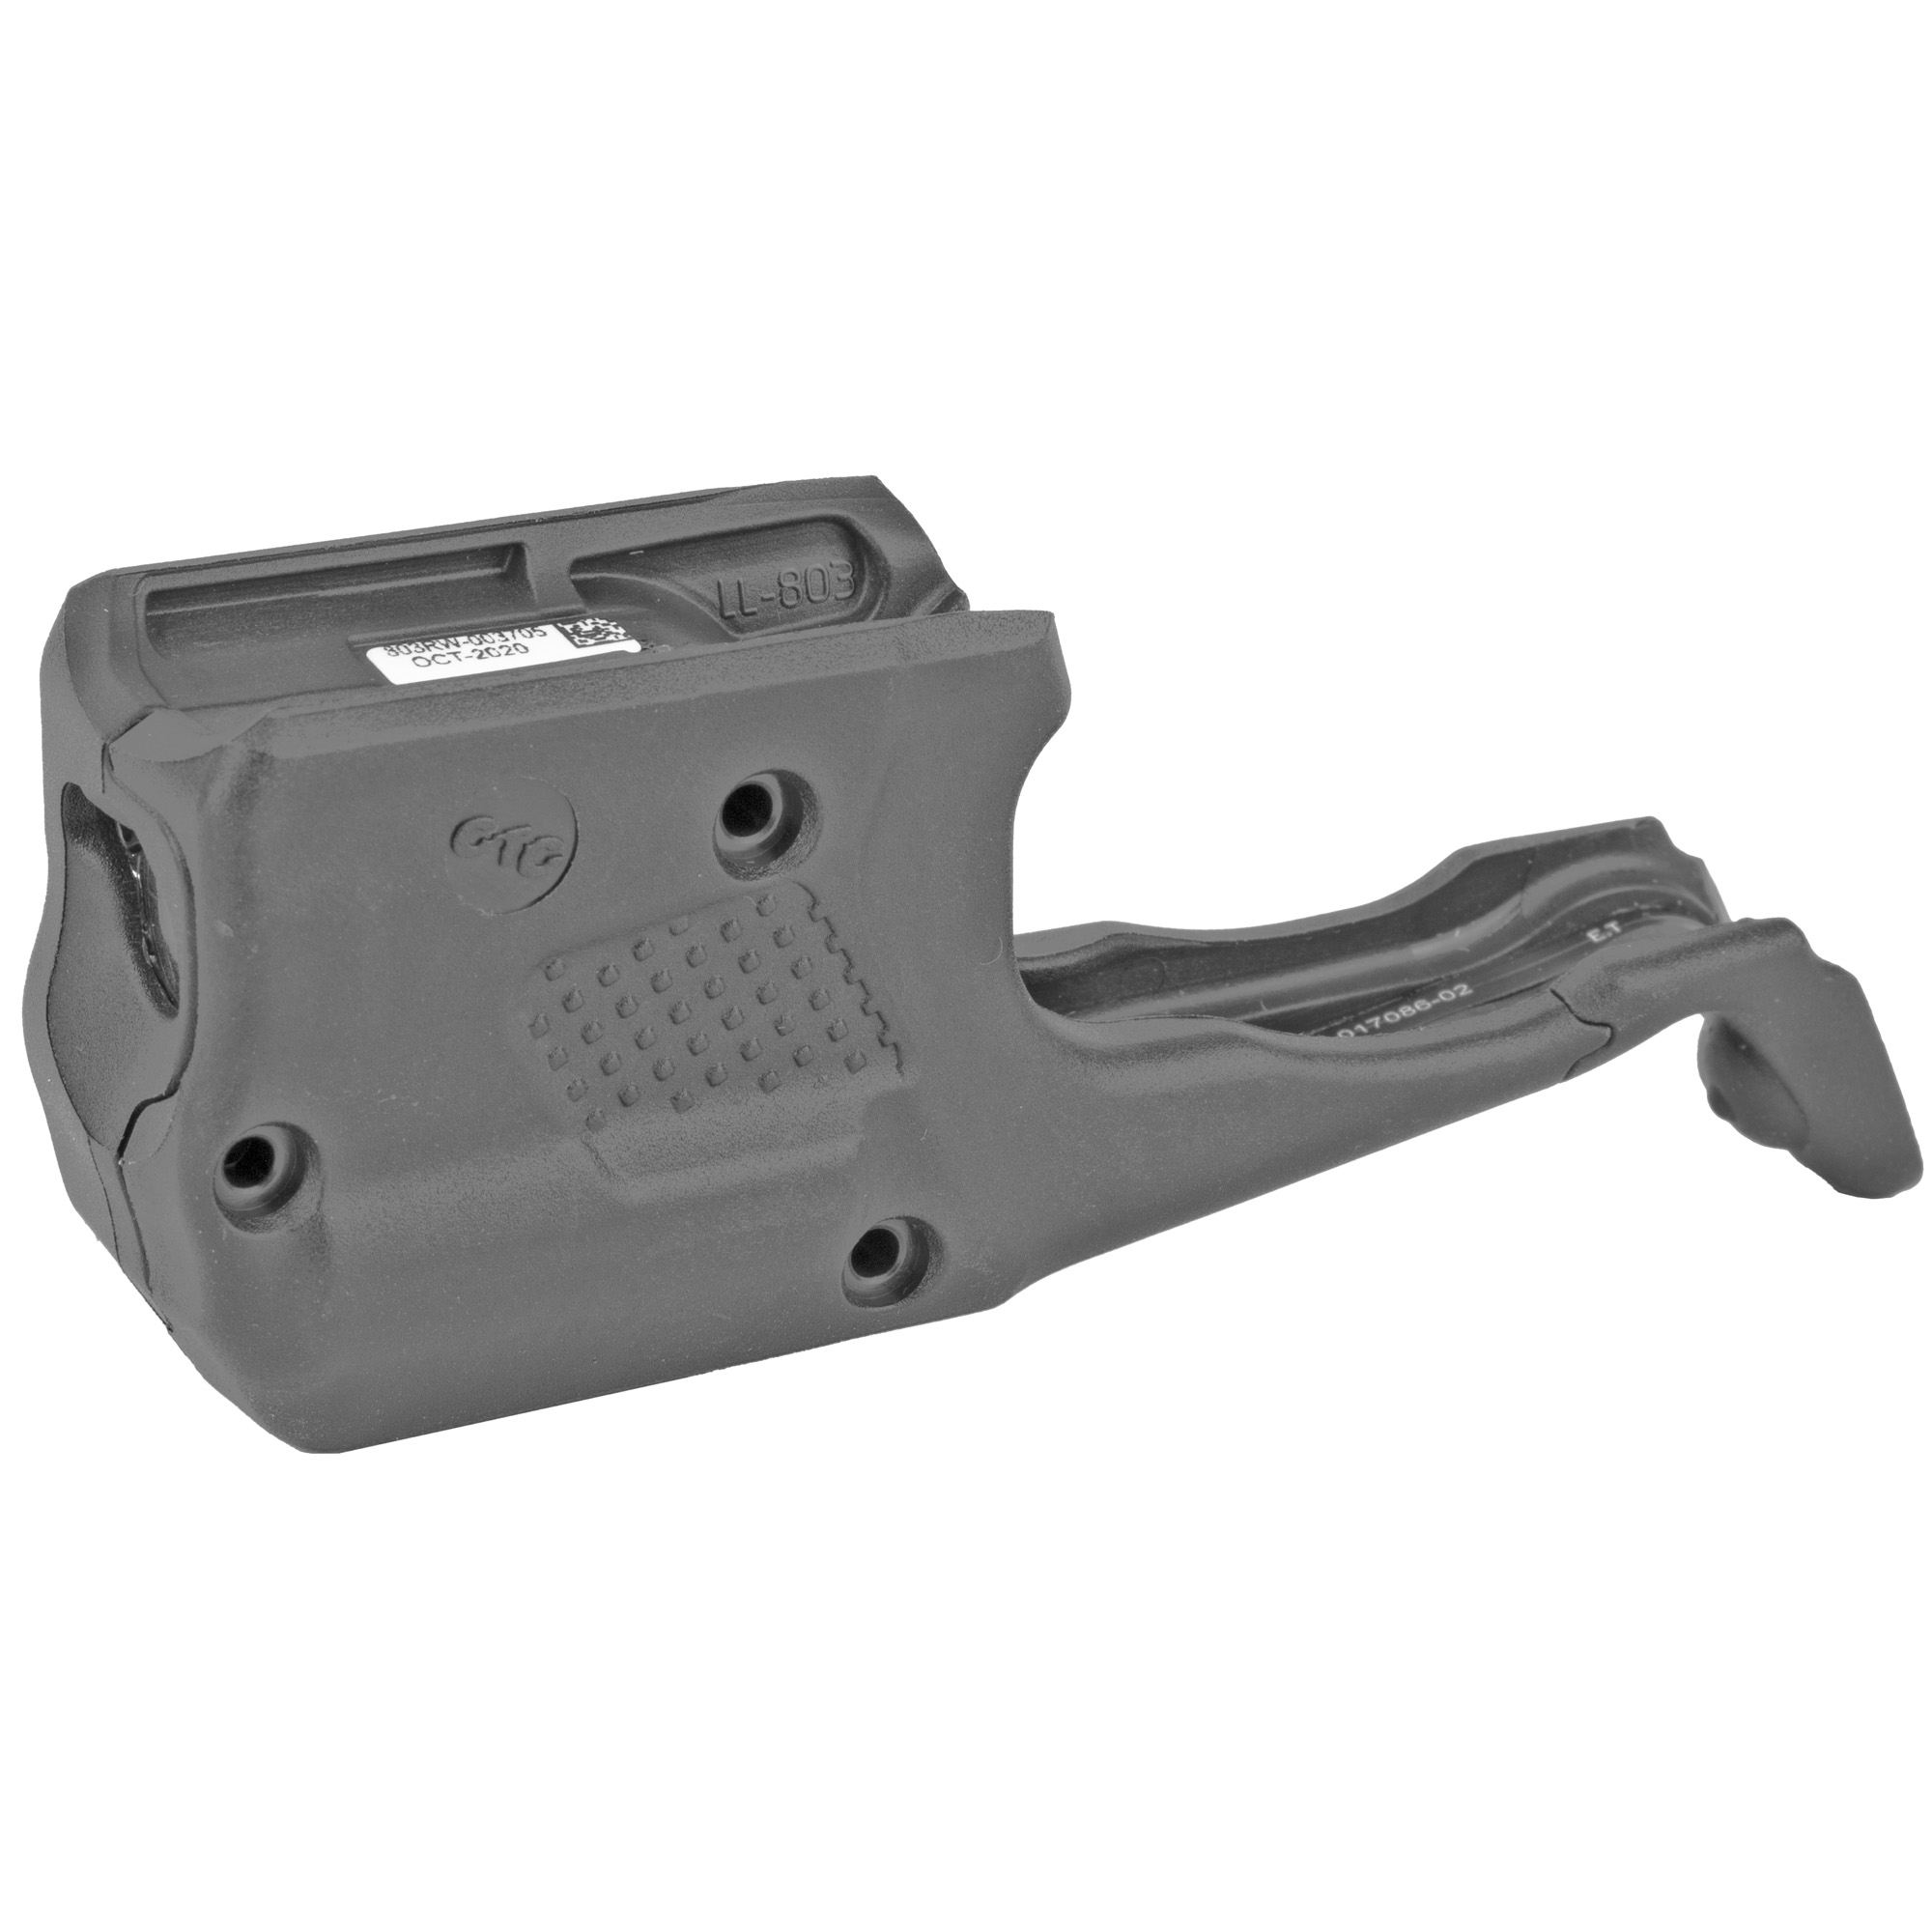 """LL-803 Laserguard(R) Pro for GLOCK(R) GLOCK(R) G42"""" G43"""" G43X and G48 is a powerful red laser sight and 150 Lumen LED white light in a single compact unit. Designed specifically for these compact platforms"""" this illumination and targeting product is activated with Crimson Trace's famed Instinctive Activation(TM)"""" which activates the unit with a normal firing grip. LL-801 offers four modes of operation: Laser + Light"""" Laser Only"""" Light Only"""" and Laser + Light Strobe. The unit features a Master On/Off Switch"""" is completely user-installed in moments"""" and is adjustable for windage and elevation."""